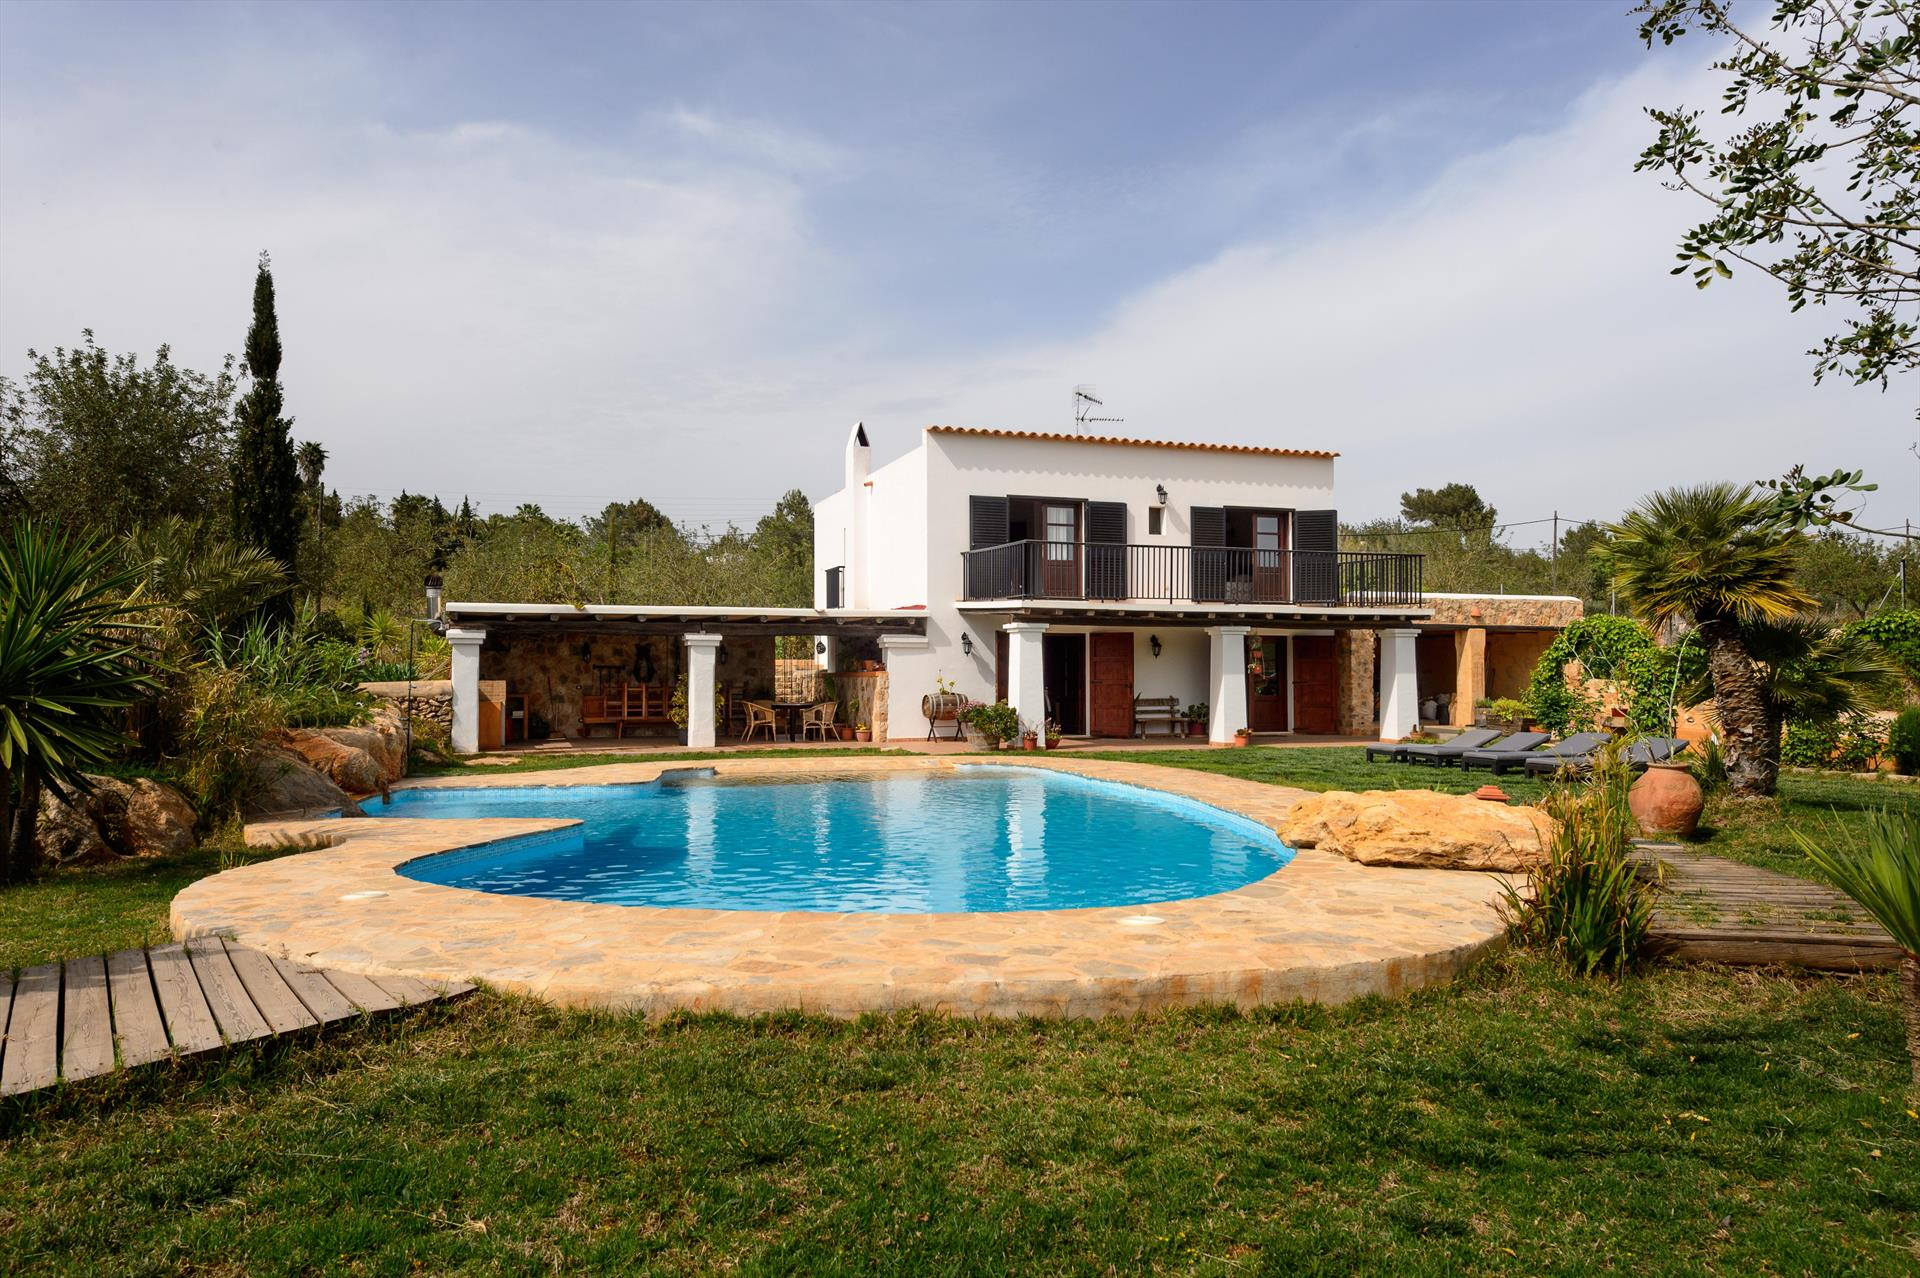 Es Coixet, Villa  with private pool in San Rafael, Ibiza, Spain for 6 persons...